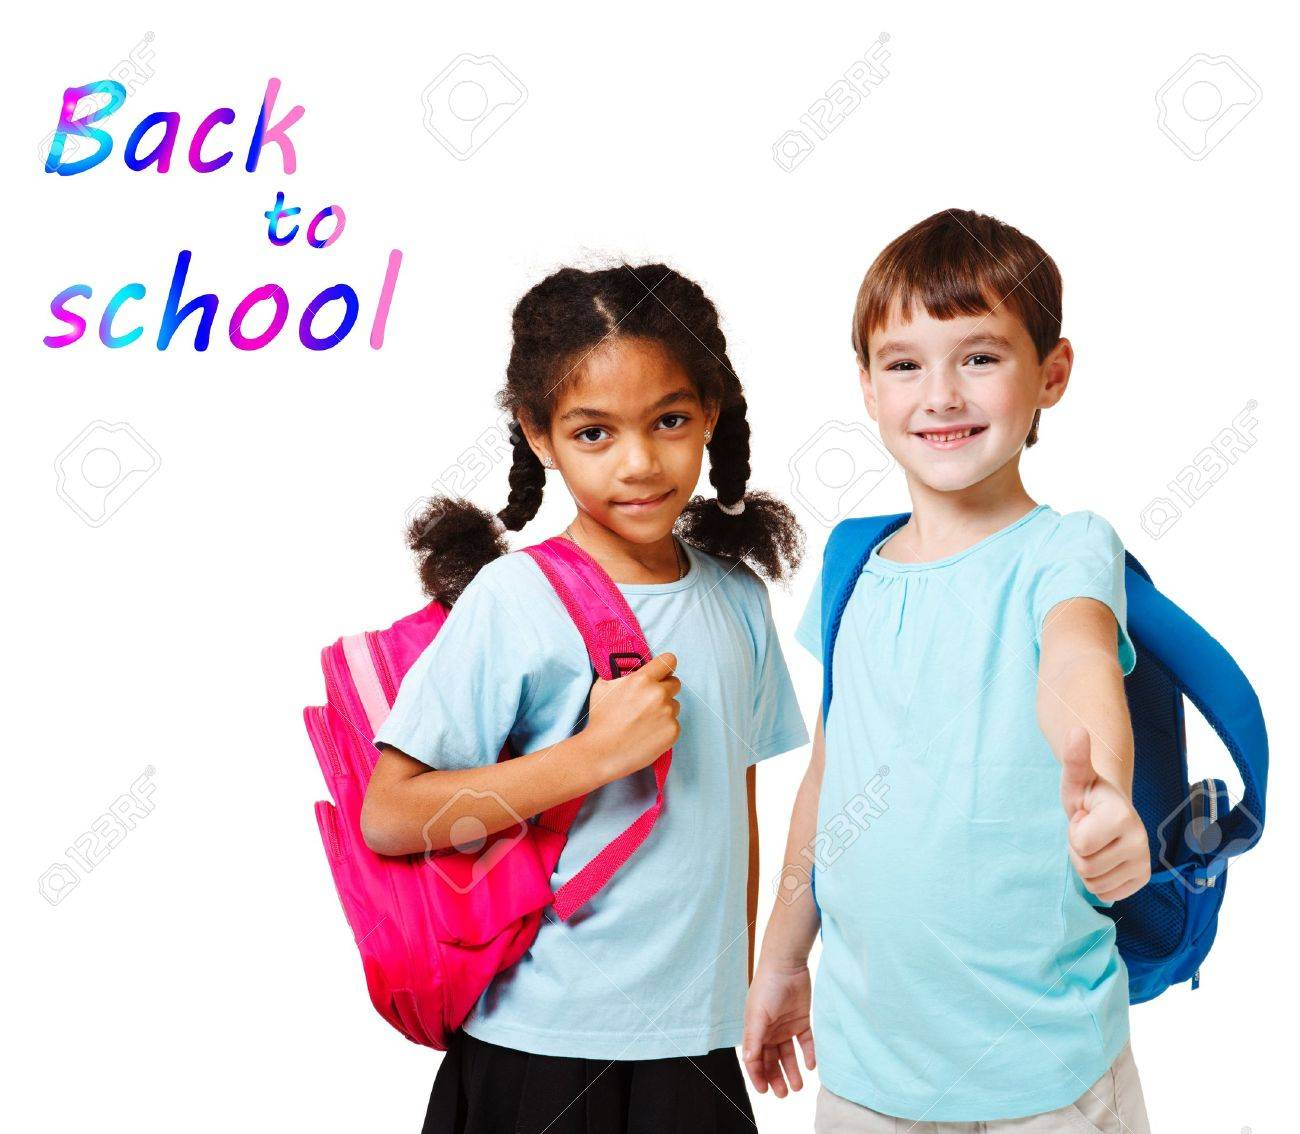 school aged child two school kids in blue t shirts with backpacks stock photo - School Pictures For Kids